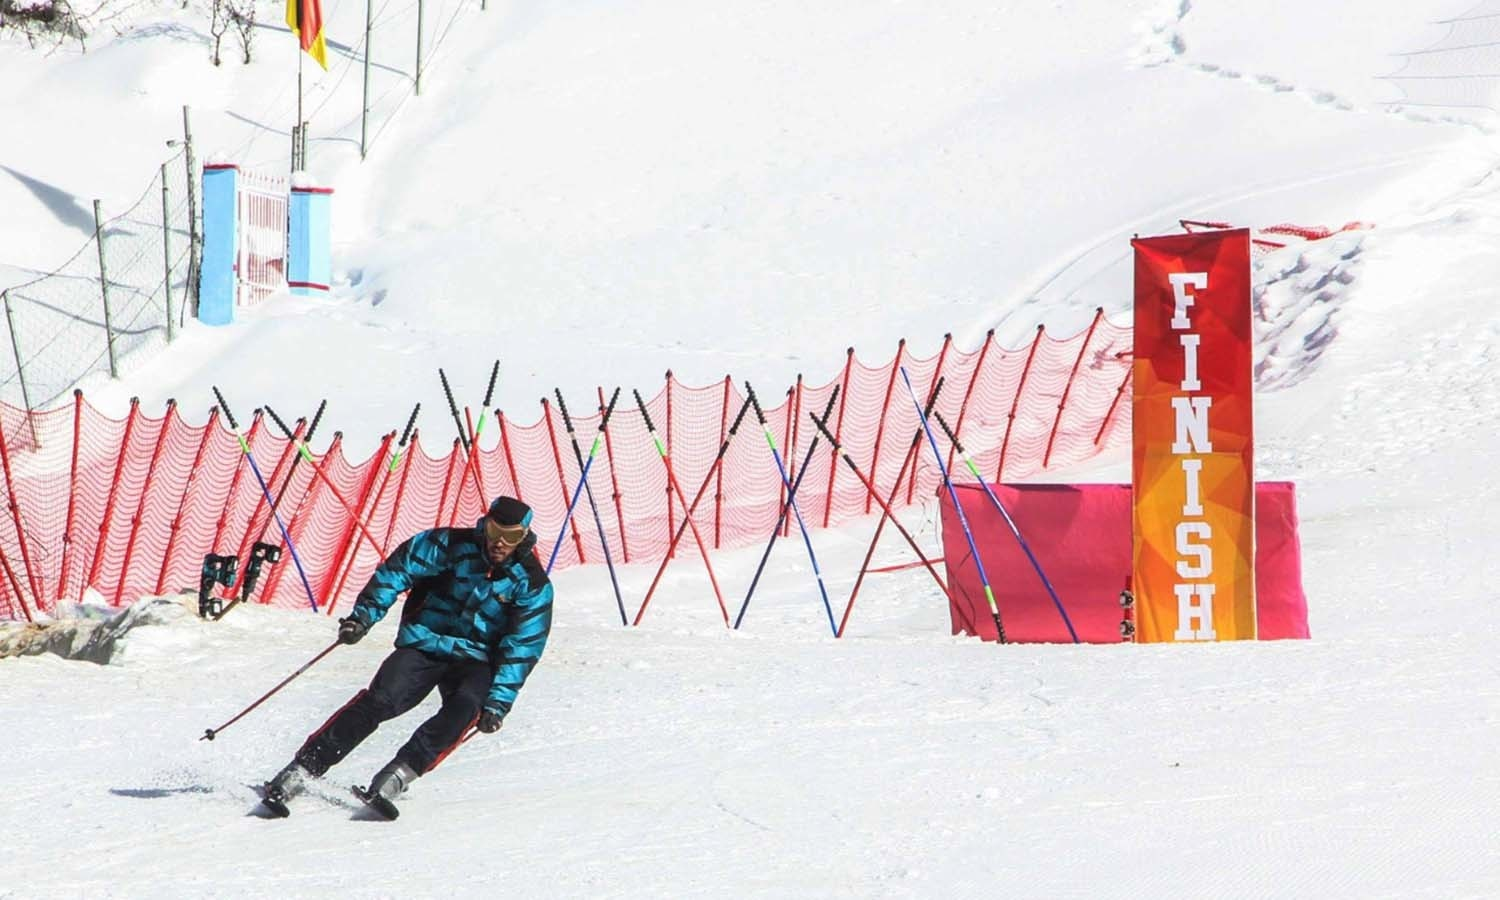 A skier crosses the finish line. ─ Photo by author